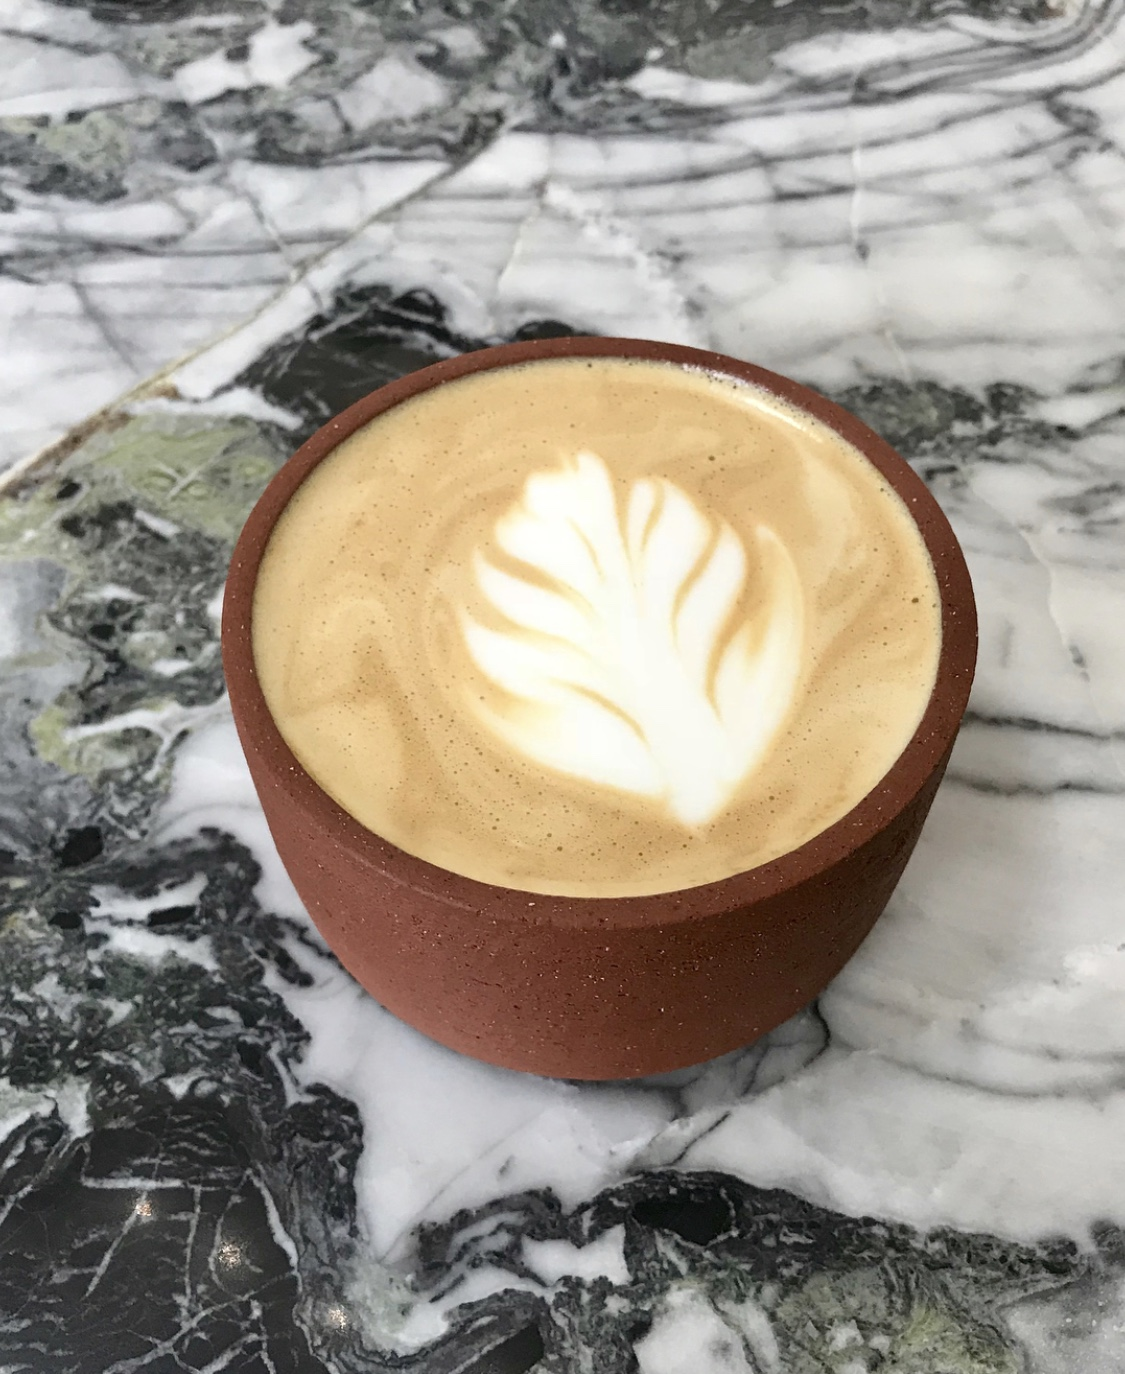 At Futuro, the mocha is decorated with creamy milk latte art in the Phoenix, Arizona location.